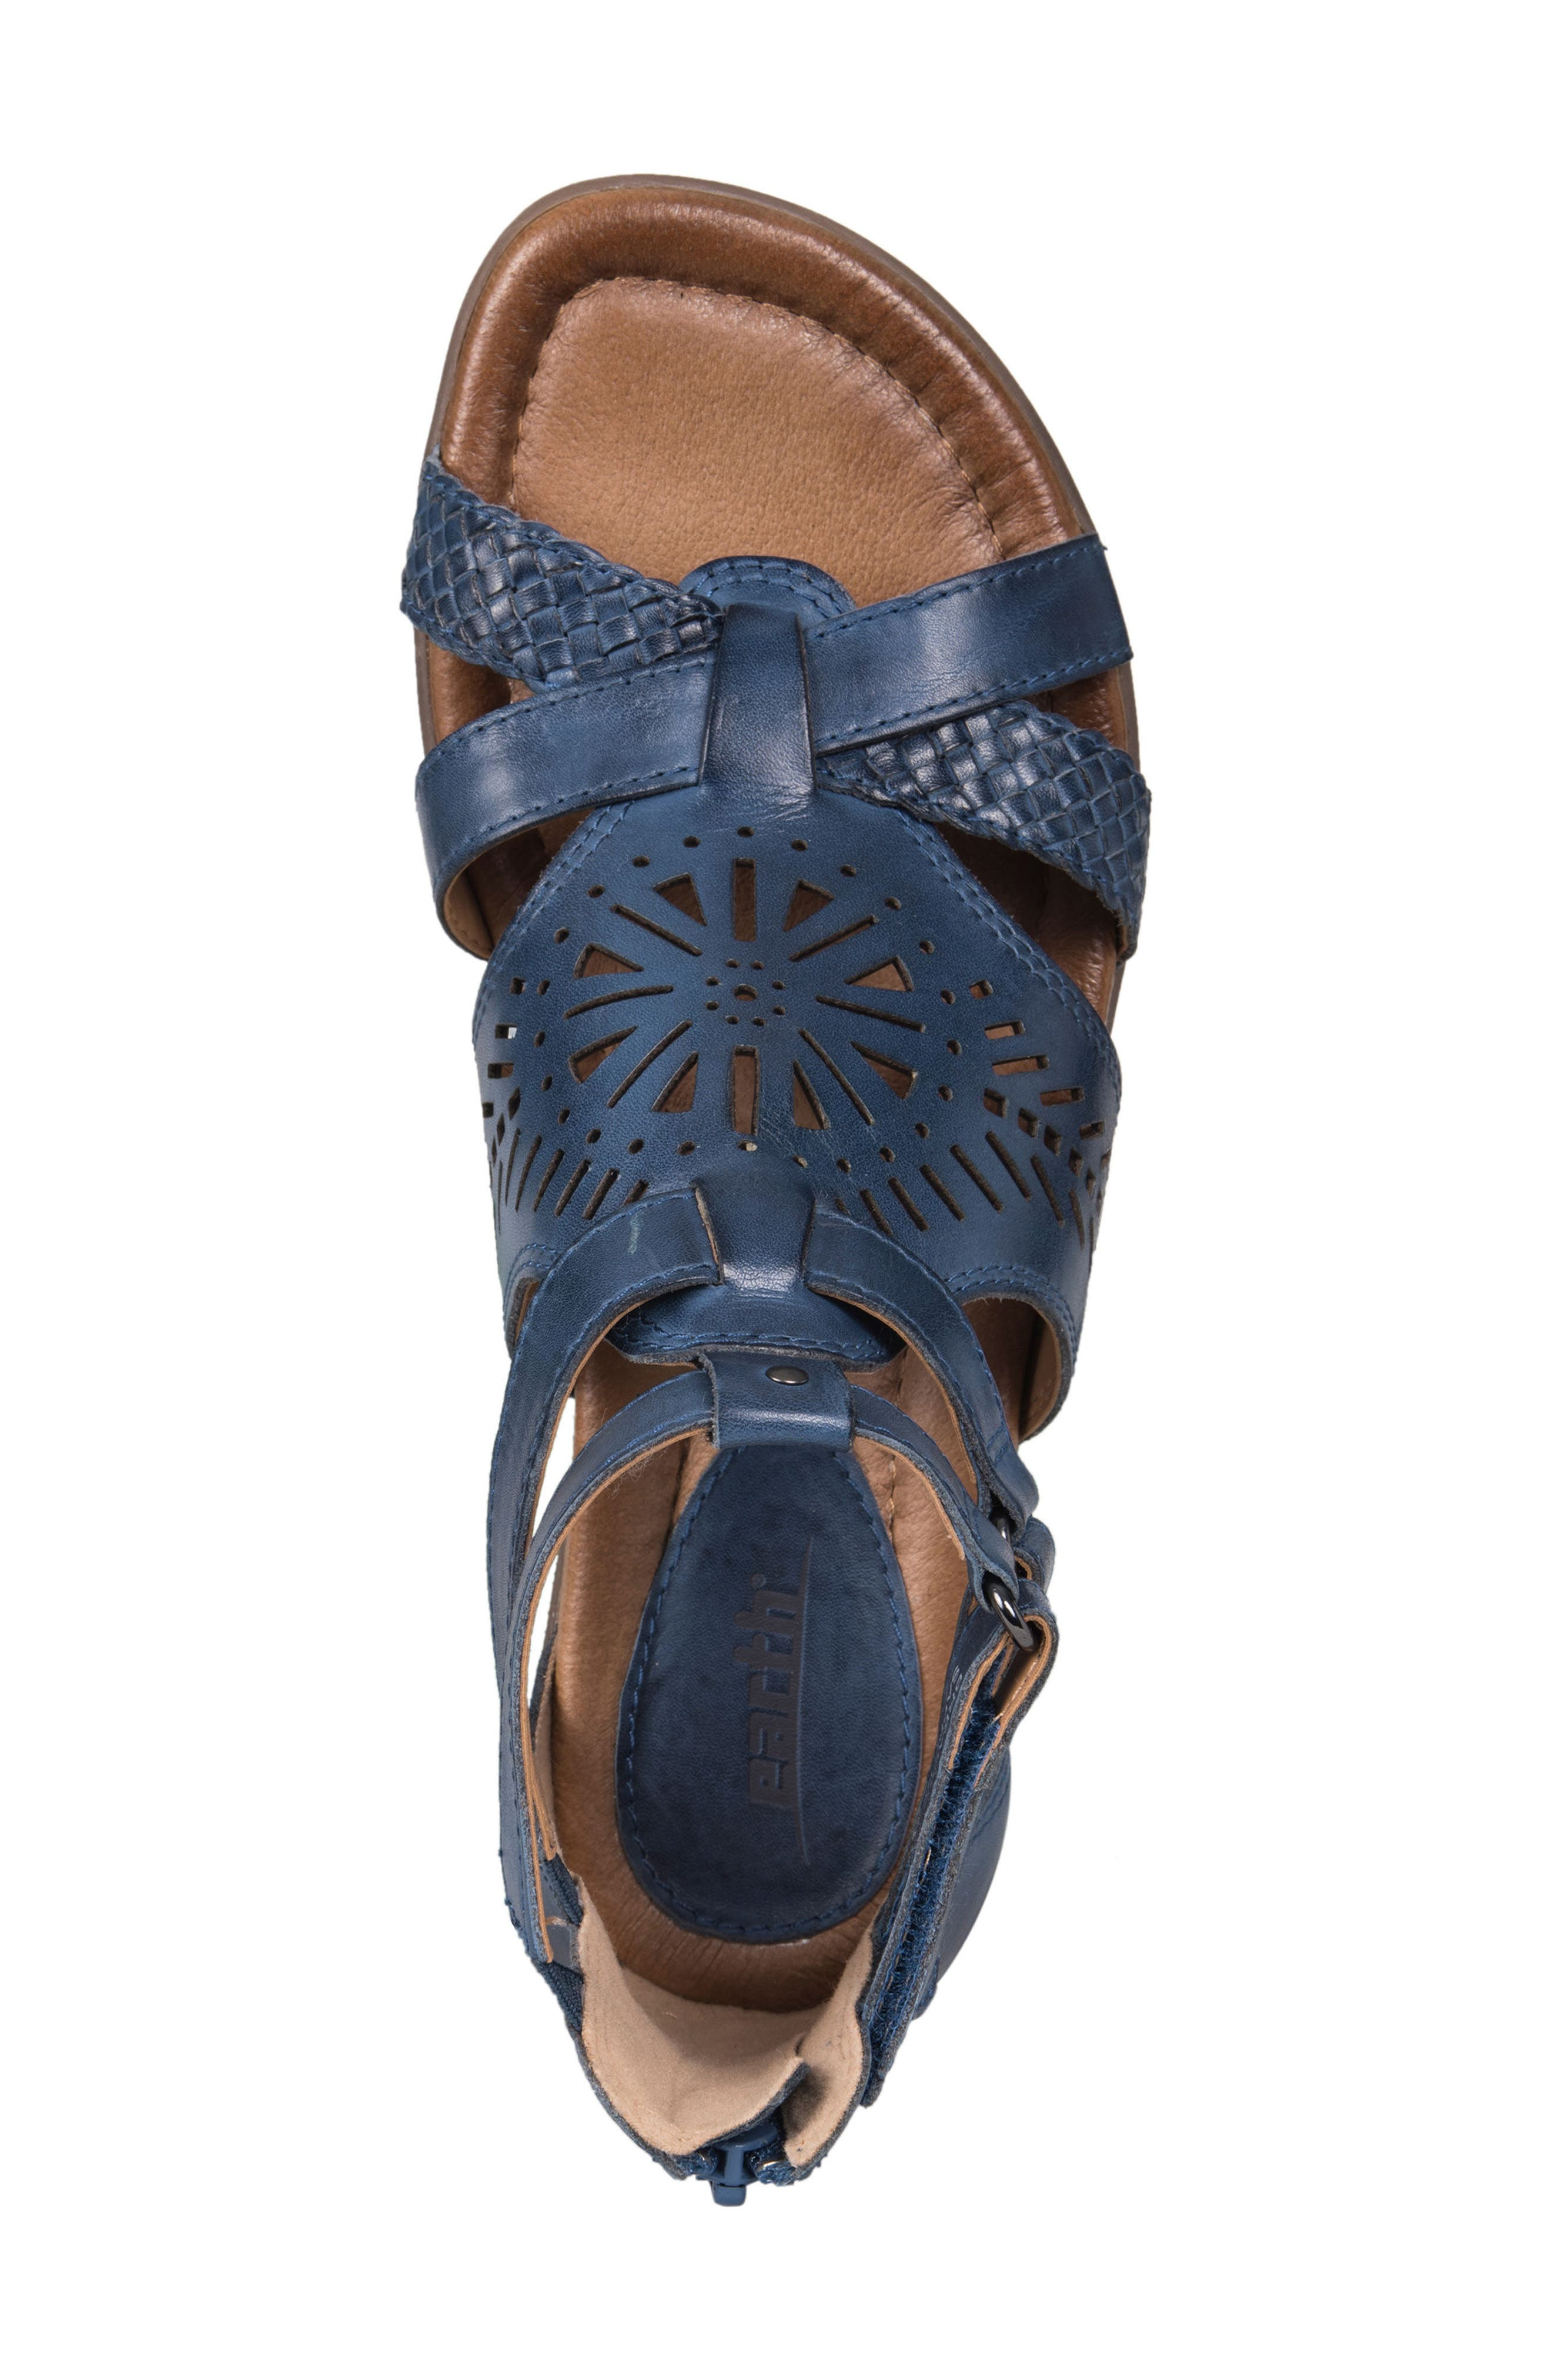 Breaker Sandal,                             Alternate thumbnail 5, color,                             SAPPHIRE BLUE LEATHER